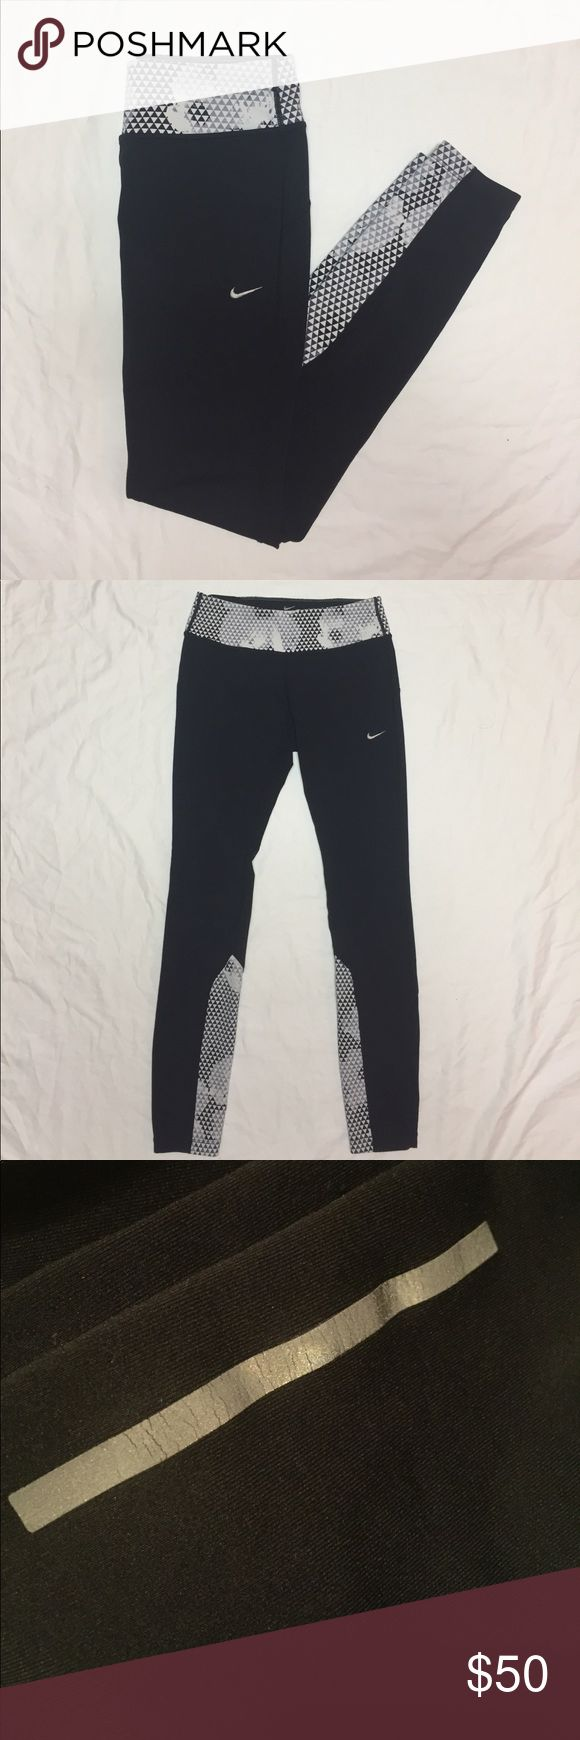 Nike Epic Running Tights Full length running tights with a cute geometric pattern on waistband and lower leg. Worn but in good condition. Slight cracking in reflective strip. Nike Pants Leggings